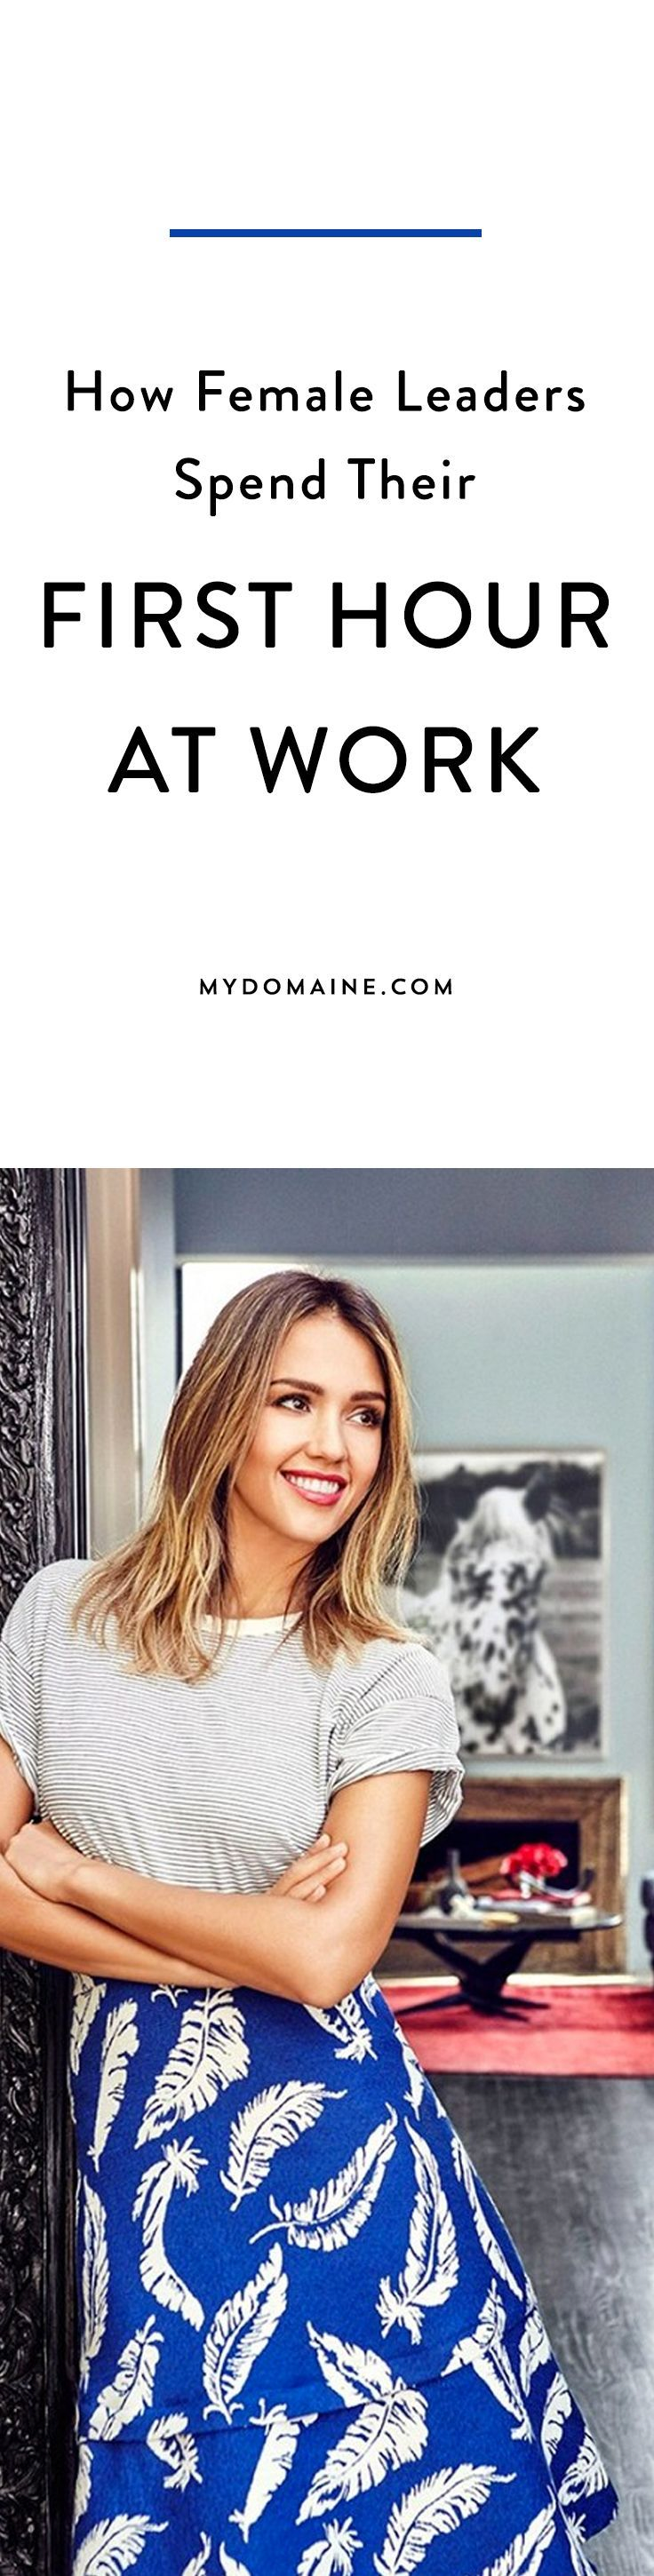 How 7 Female Leaders Spend Their First Hour at Work http://www.mydomaine.com/female-leaders-work-routine/slide4